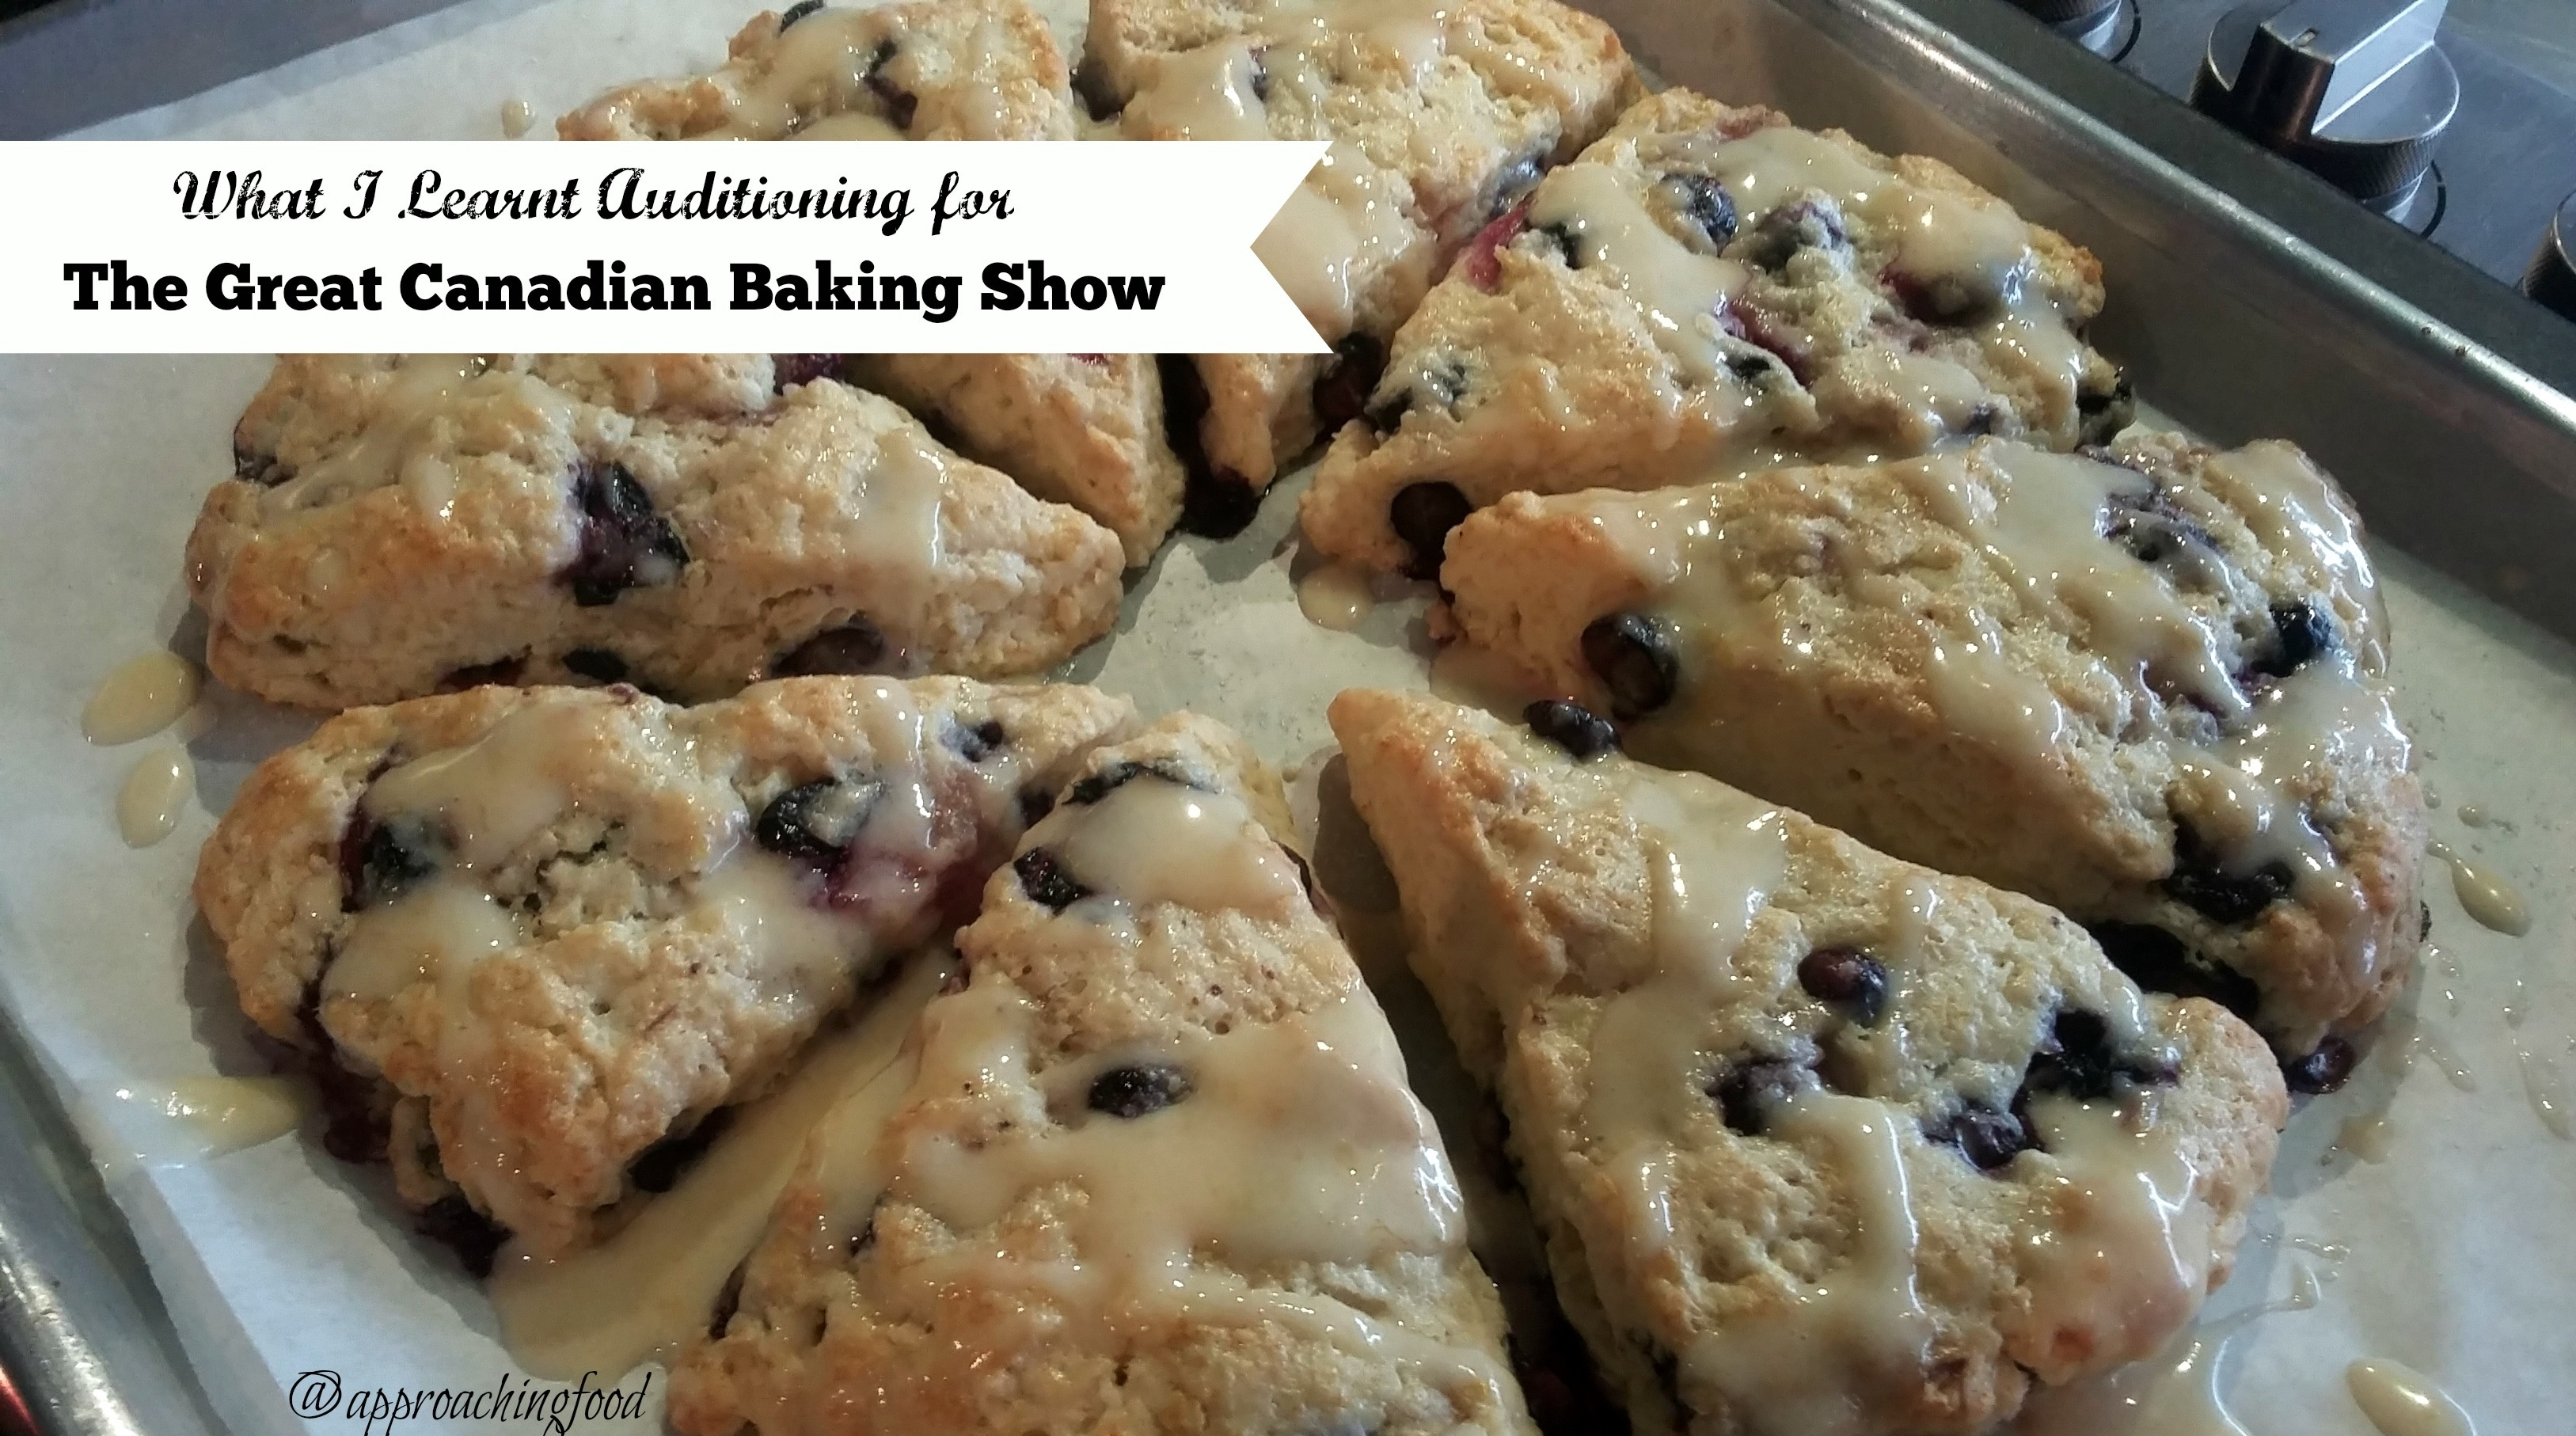 What I Learnt Auditioning for The Great Canadian Baking Show